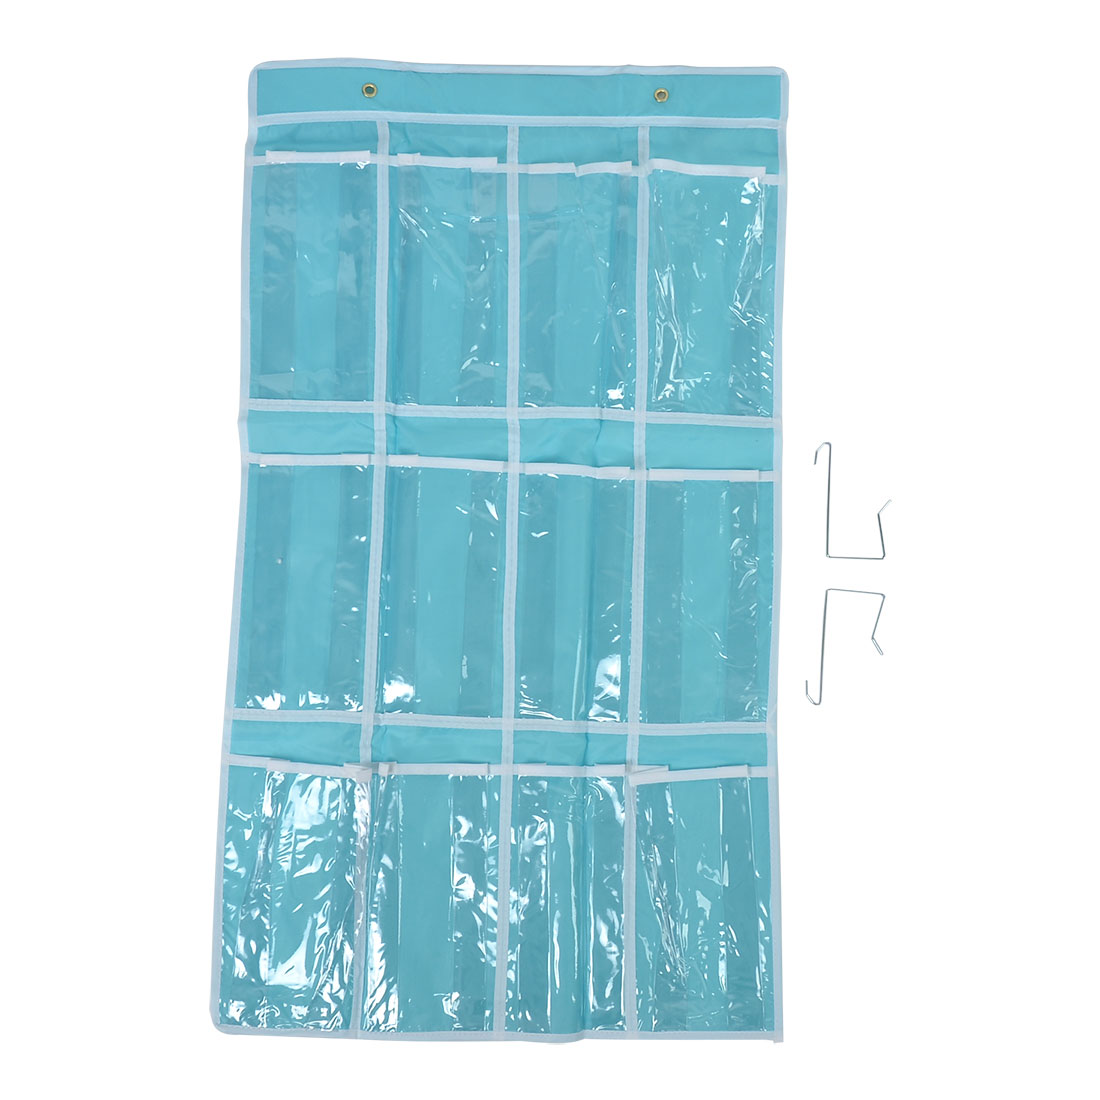 Household Home Wall Door Closet 12 Pockets Hanging Pouch Storage Bag Sky Blue